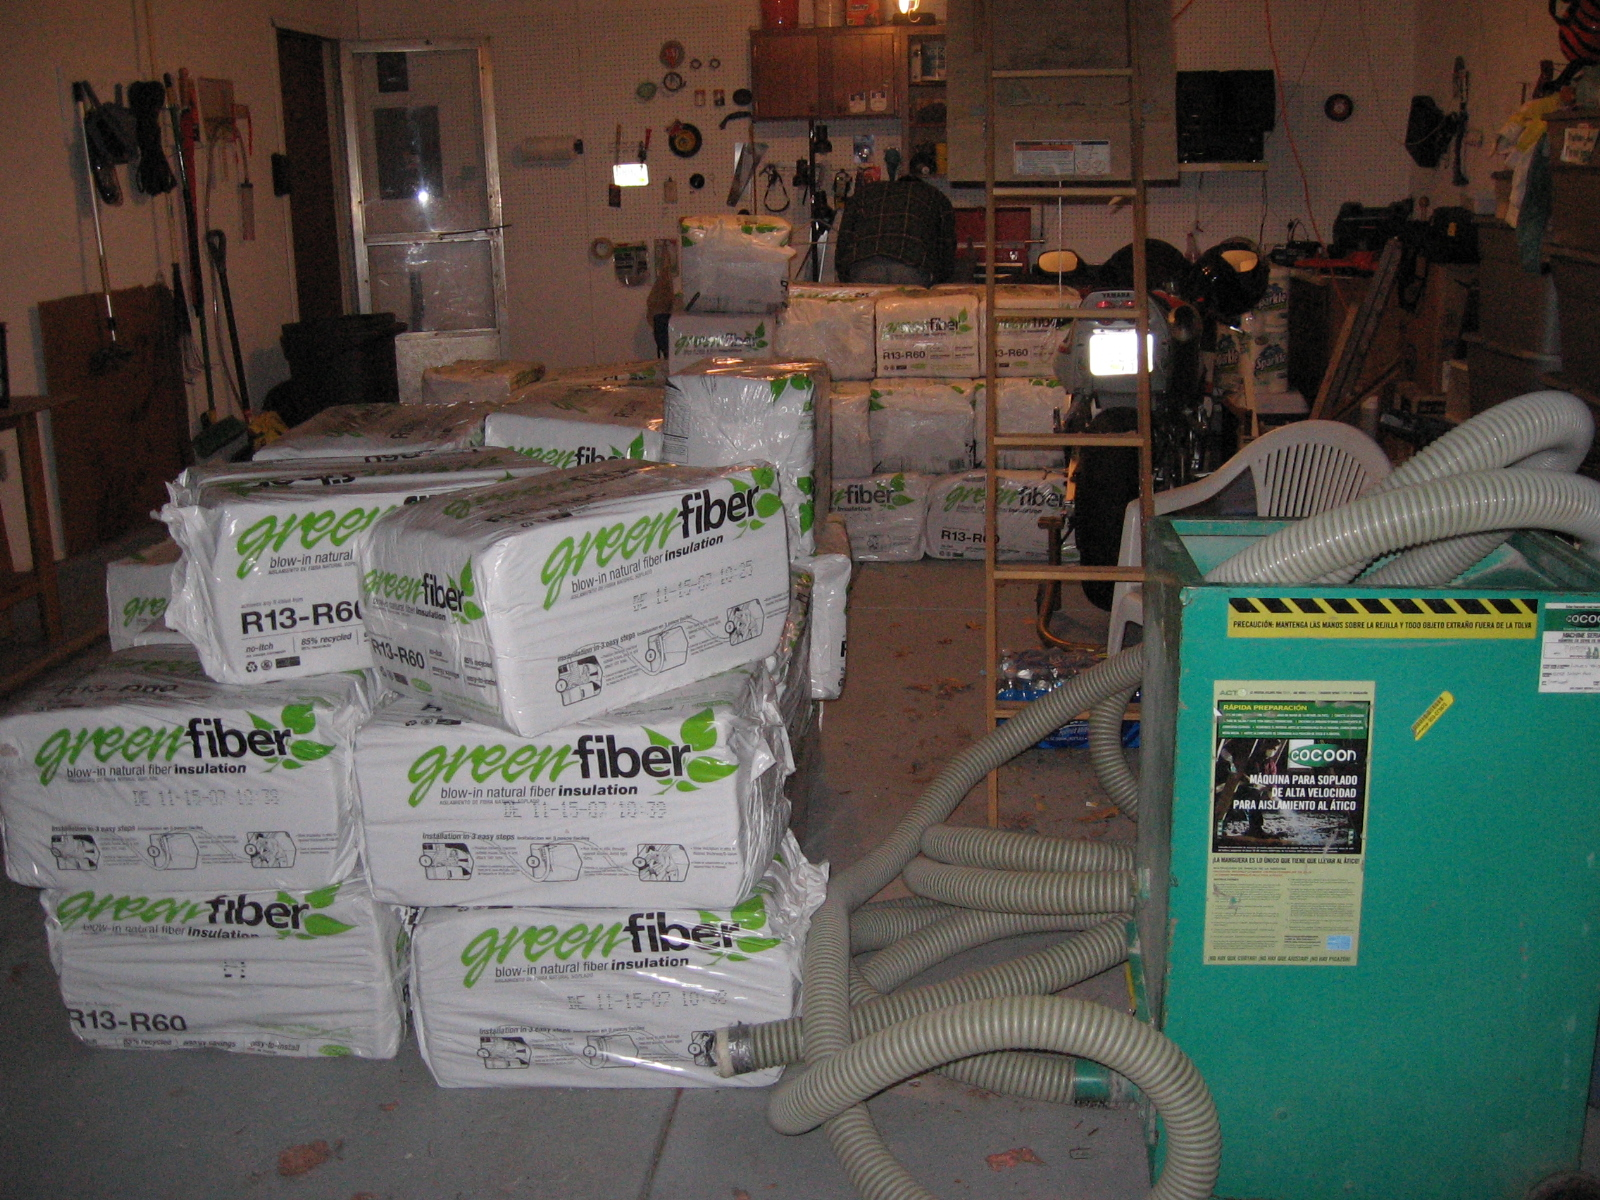 Lots of insulation